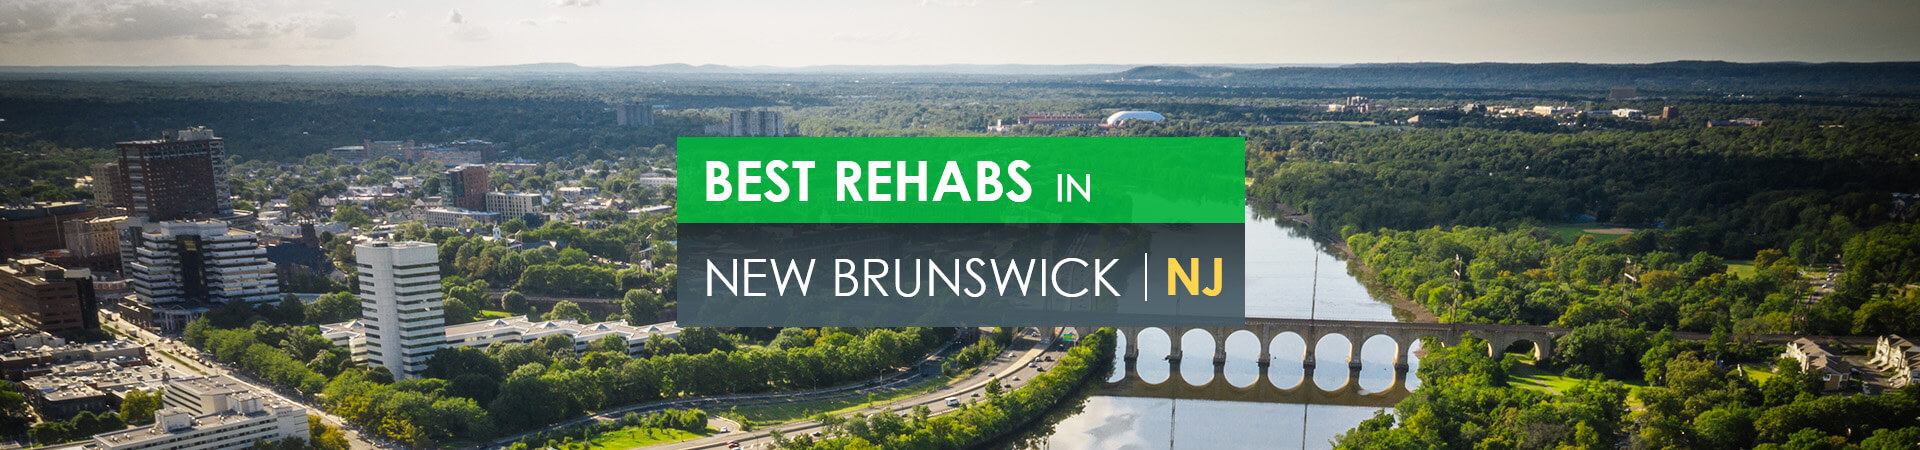 Best rehabs in New Brunswick, NJ